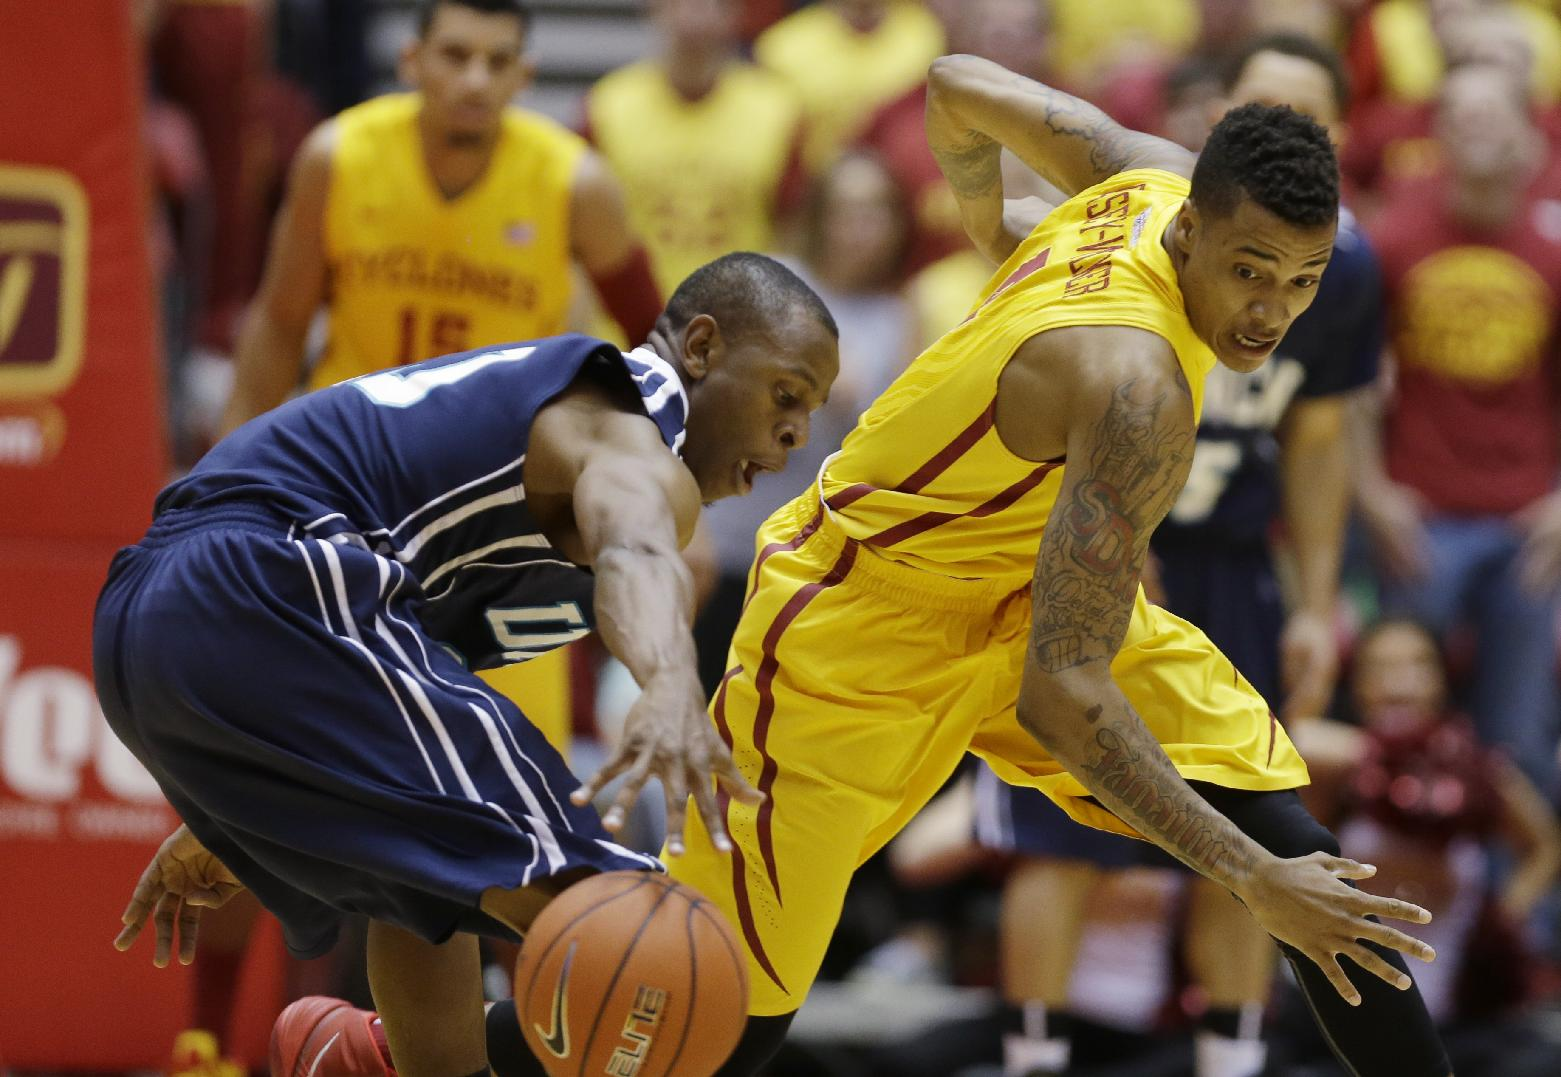 Iowa State guard Sherron Dorsey-Walker, right, tries to steal the ball from UNC Wilmington guard Freddie Jackson during the first half of an NCAA college basketball game on Sunday, Nov. 10, 2013, in Ames, Iowa